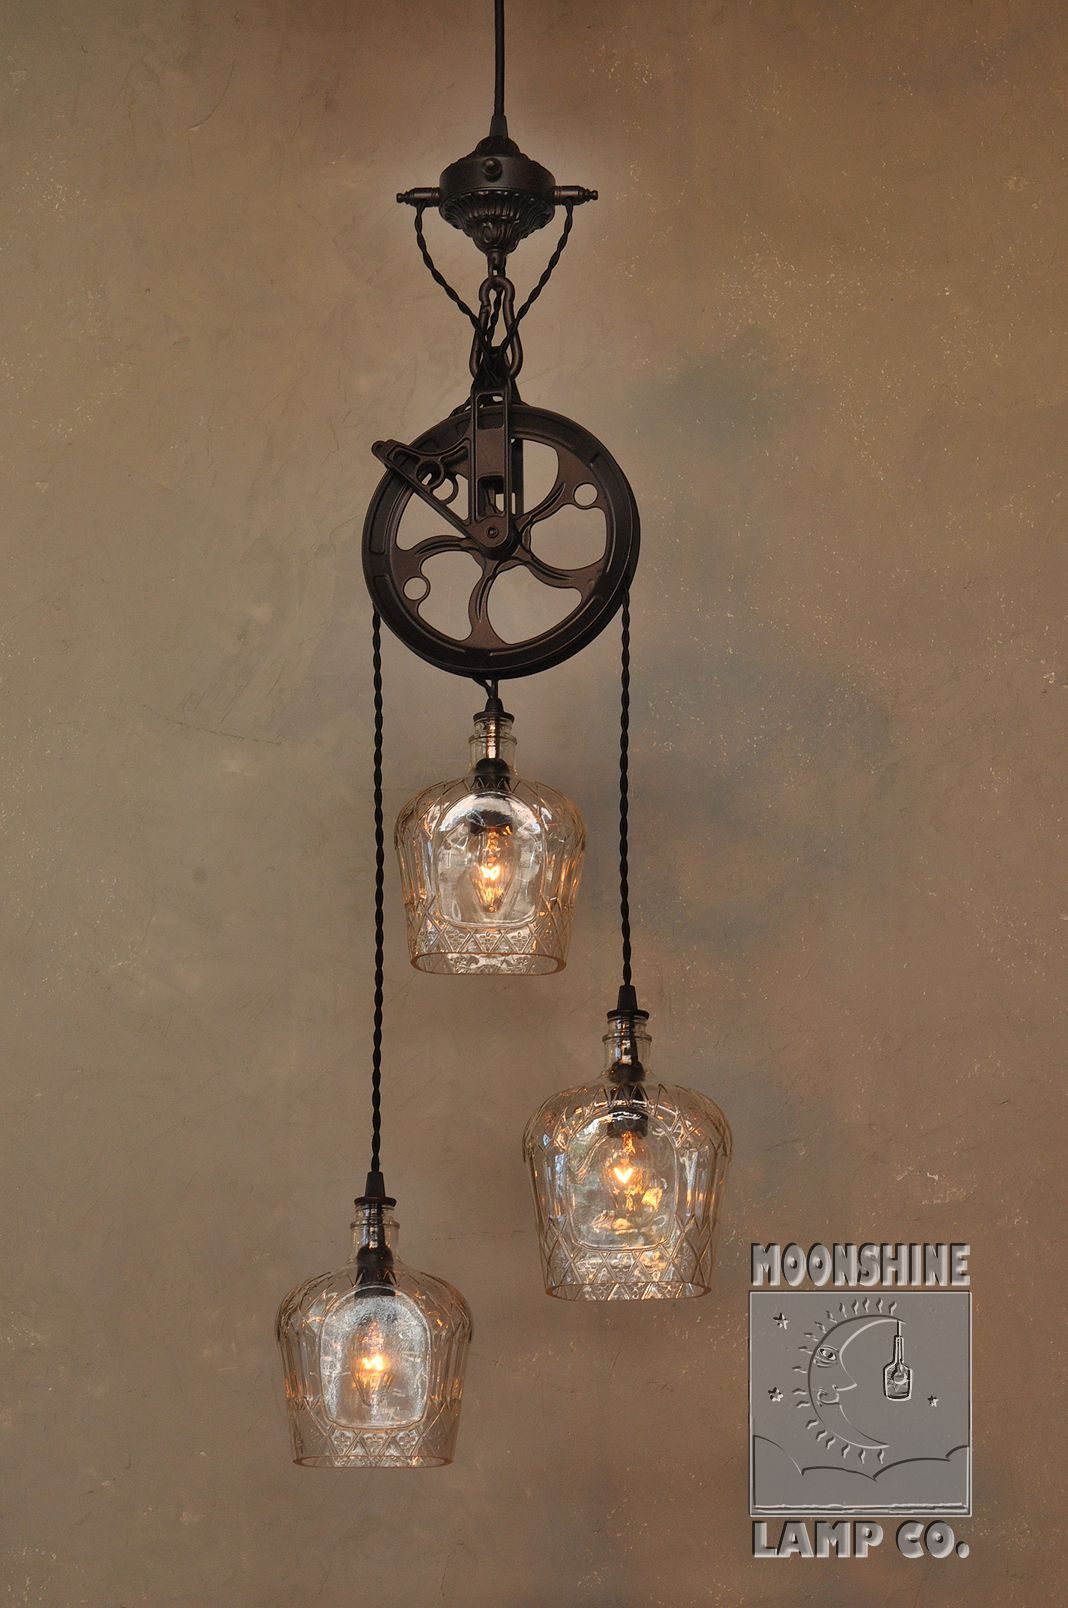 Were pleased with this brand new 3 light version of our popular were pleased with this brand new version of our popular warehouser dual pendant chandelier made from recycled bottles this fixture was commissioned by a arubaitofo Choice Image